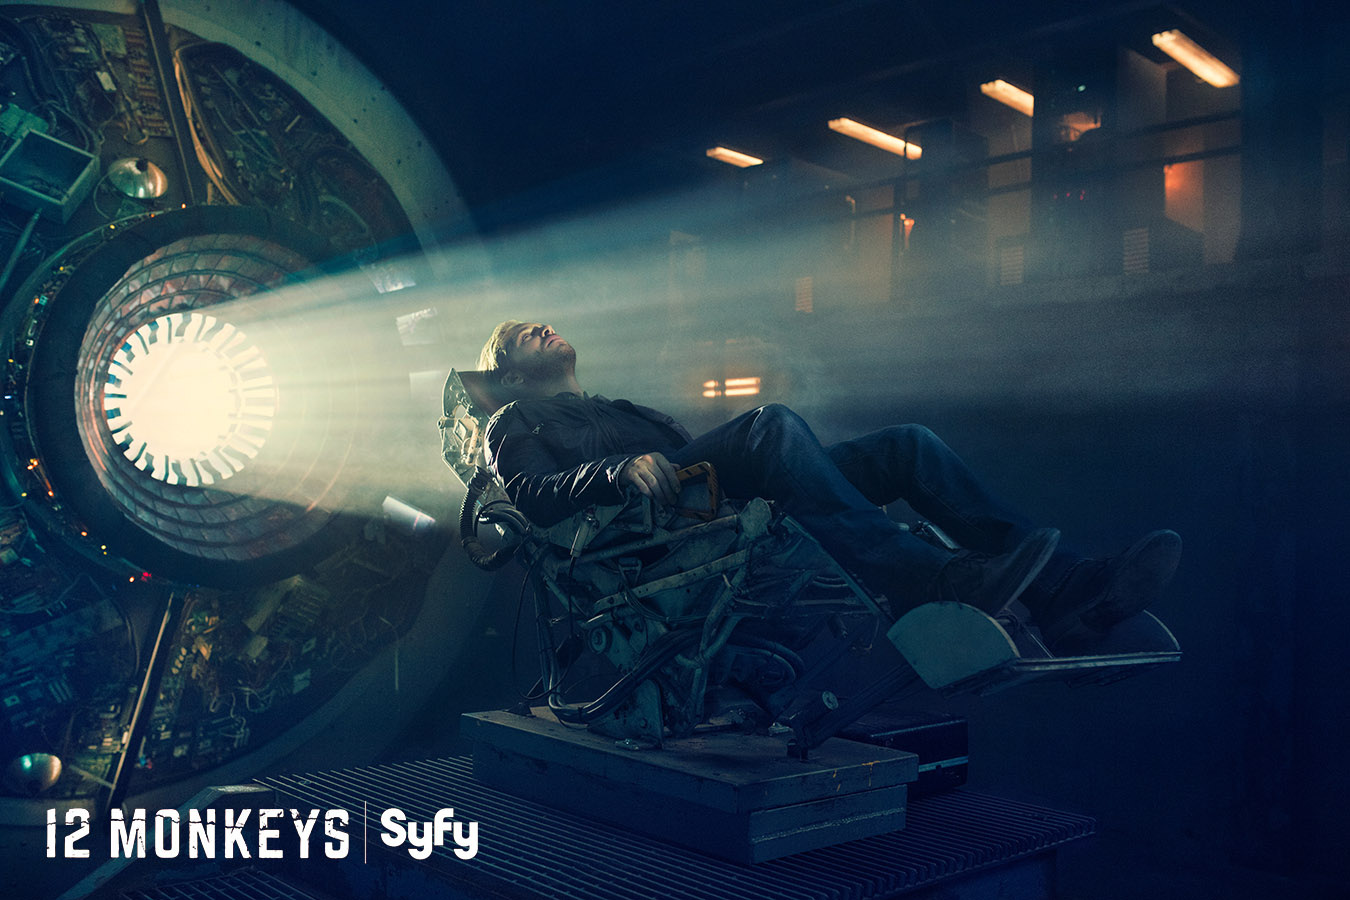 Ad2978_05-12Monkeys-SyFy-KurtIswarienko-THPP